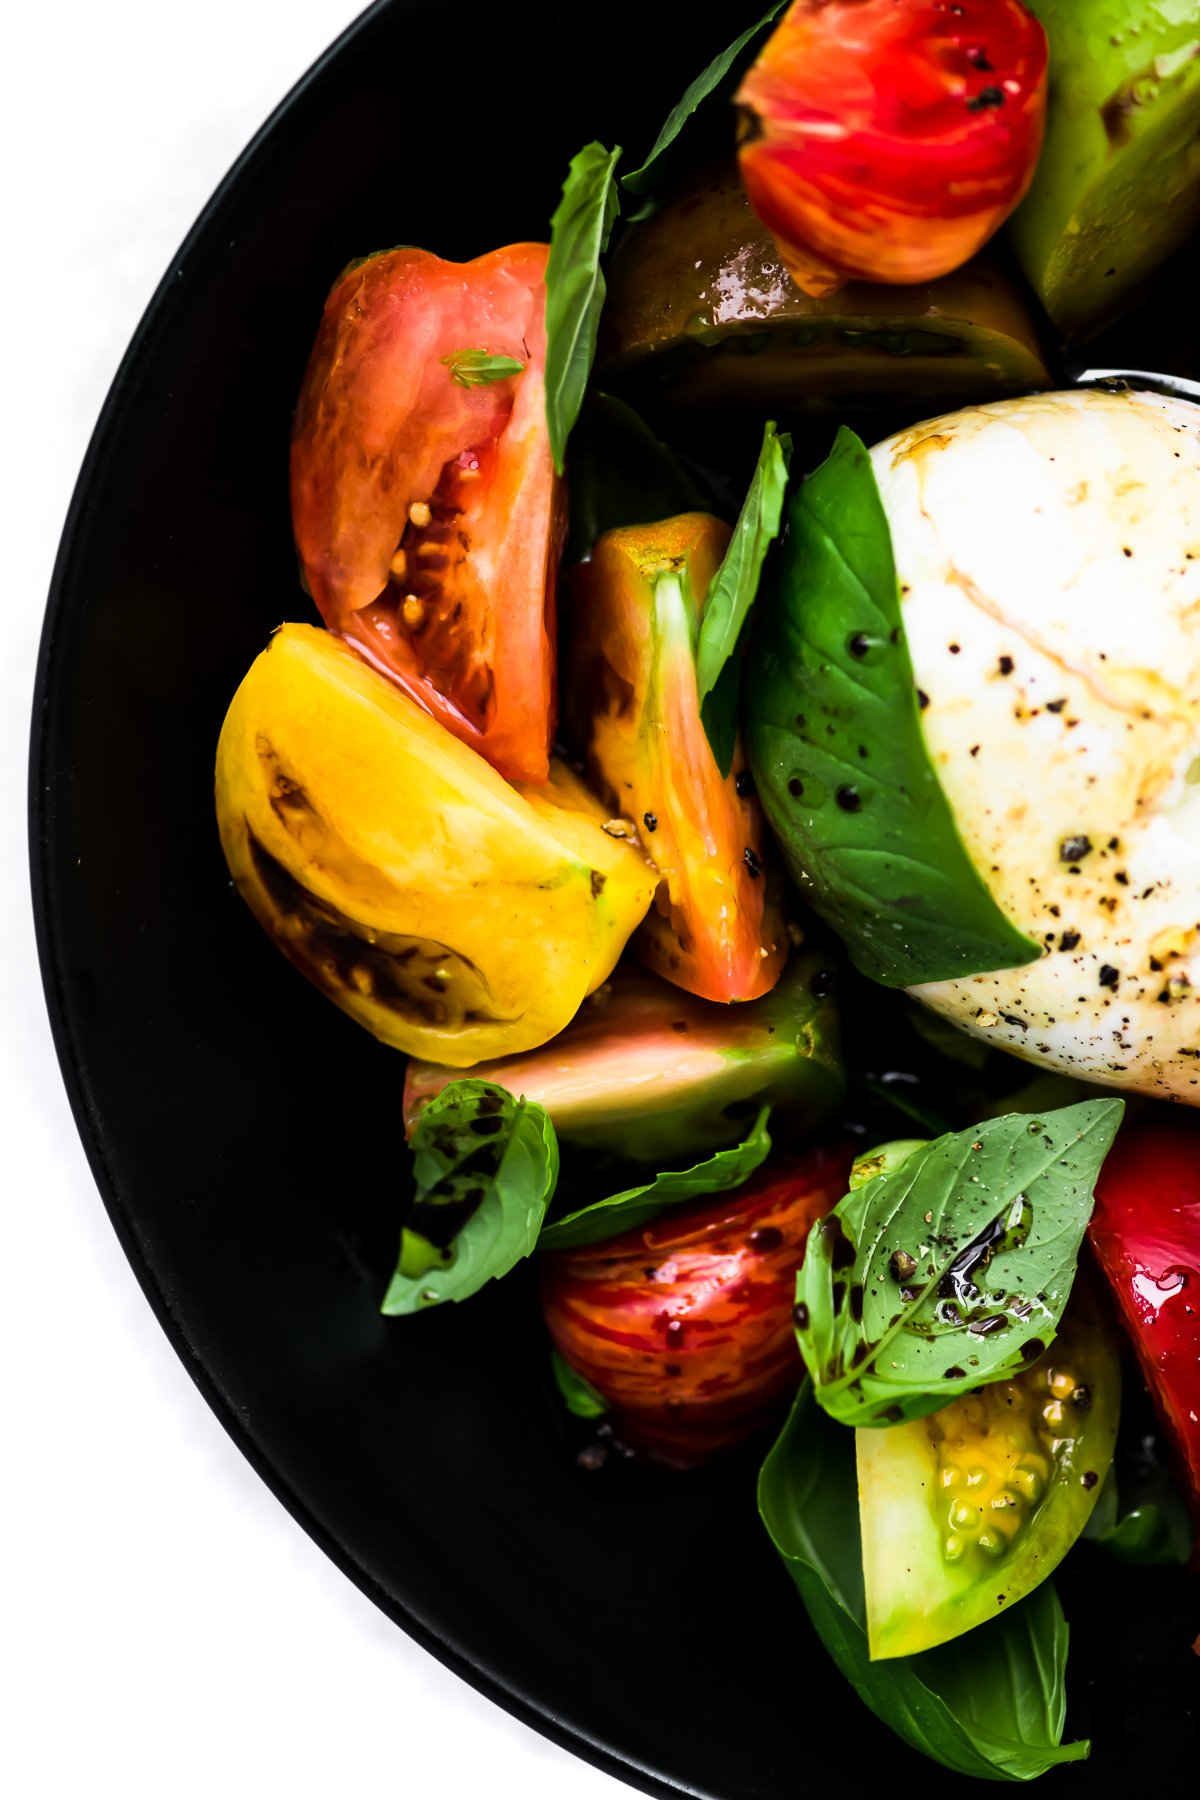 Burrata Caprese Salad with fresh basil leaves